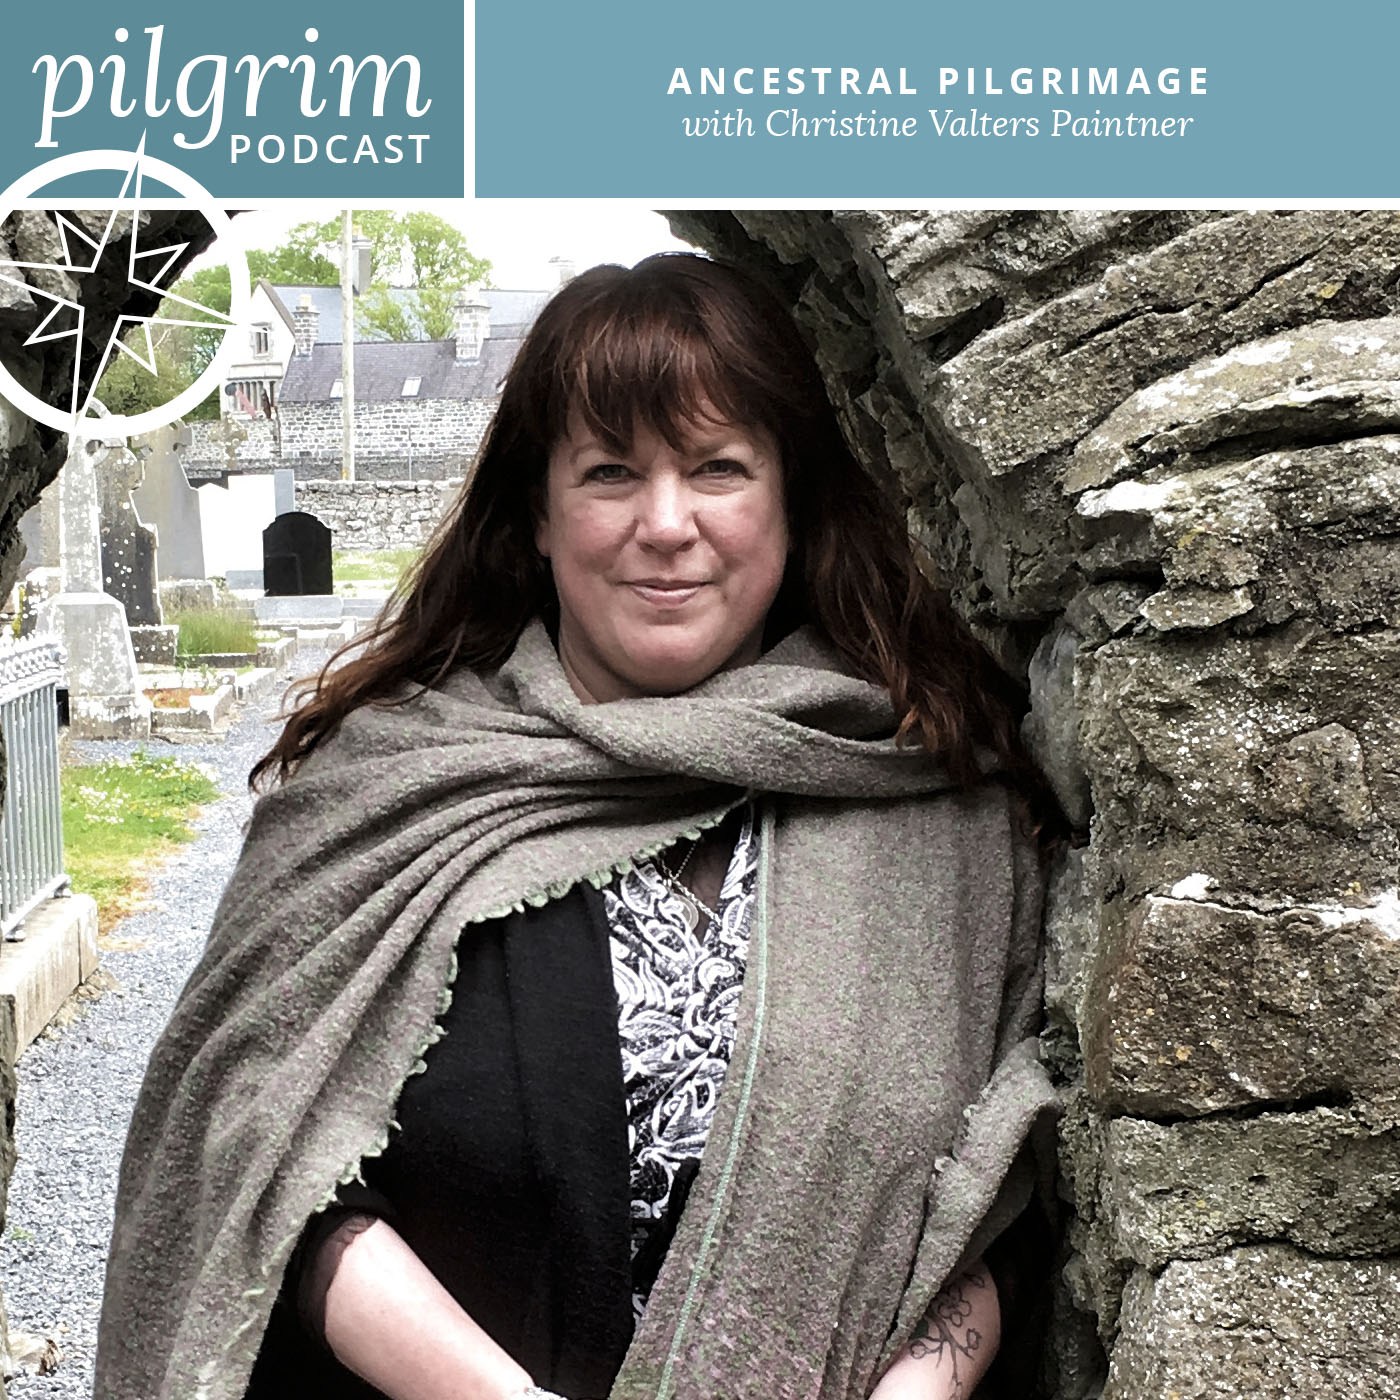 S1:E4 | Ancestral Pilgrimage with Christine Valters Paintner